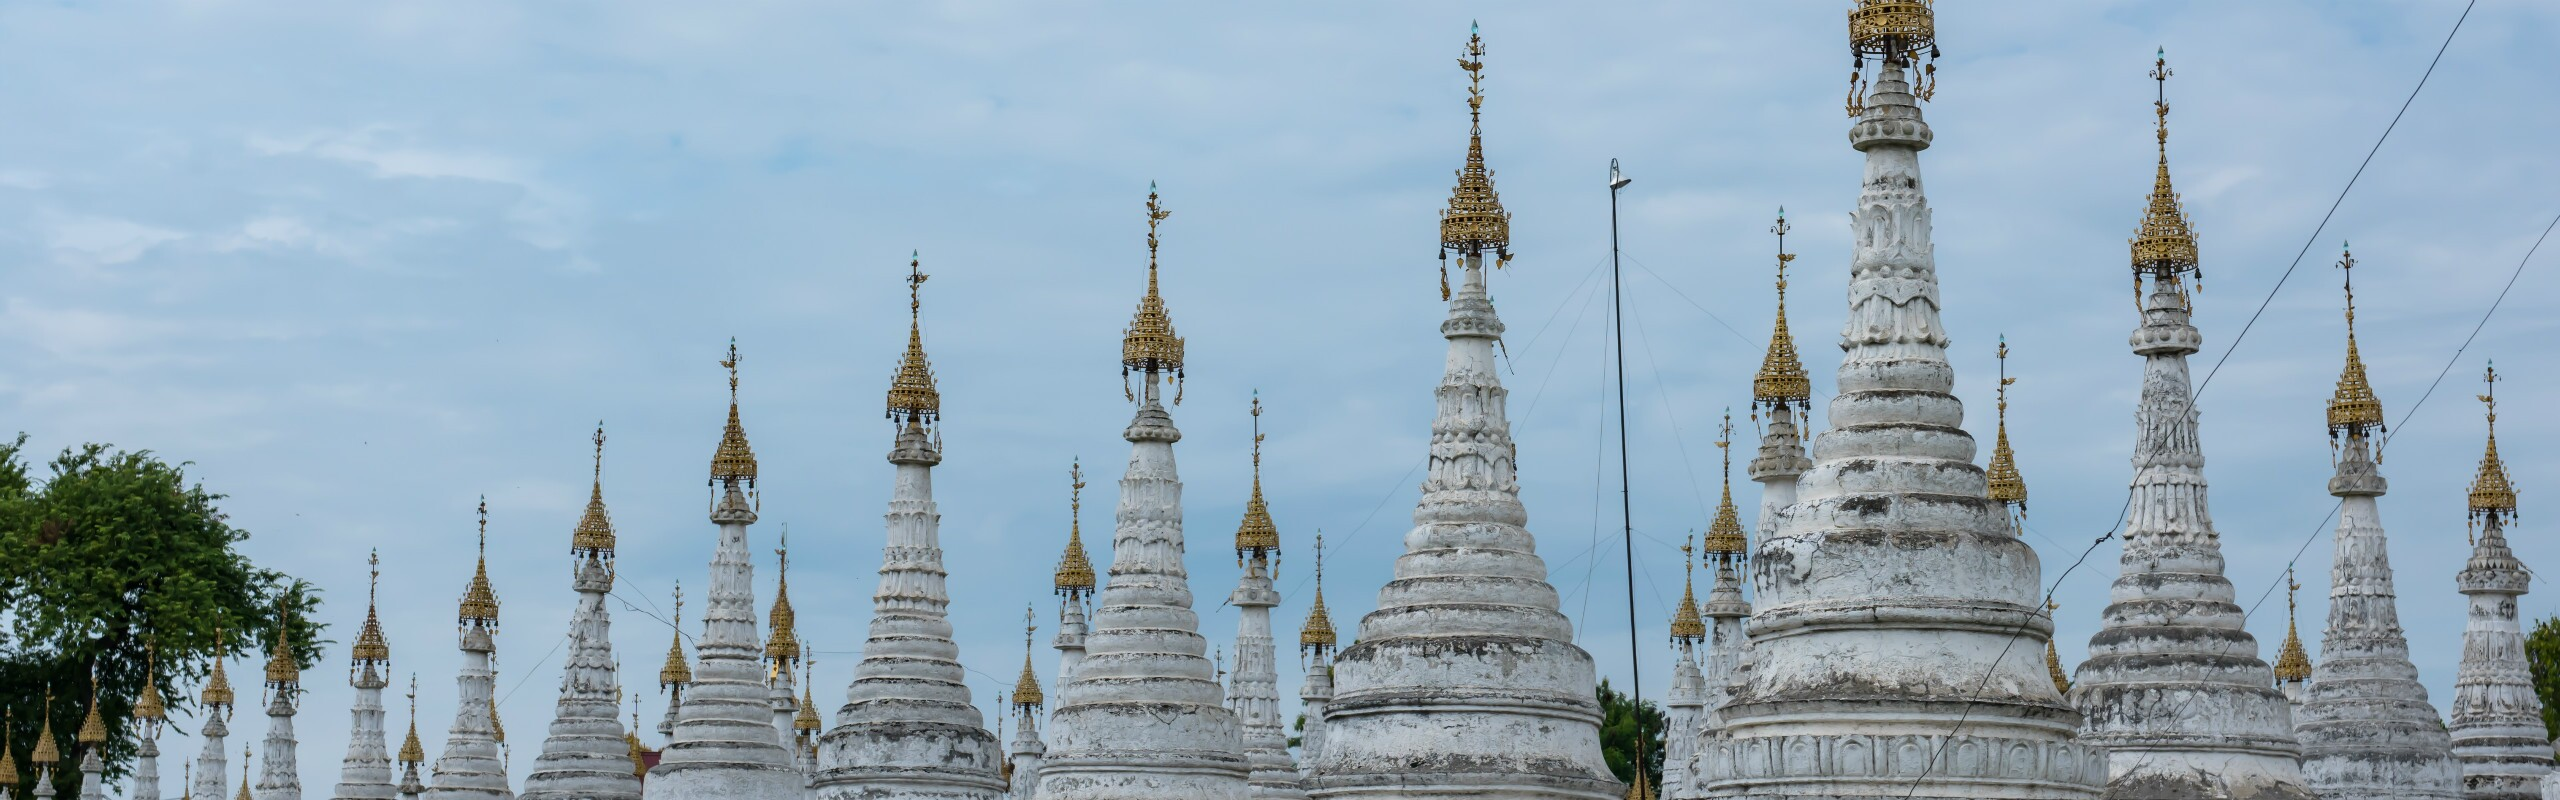 January Weather in Mandalay - Coolest Weather of the Year